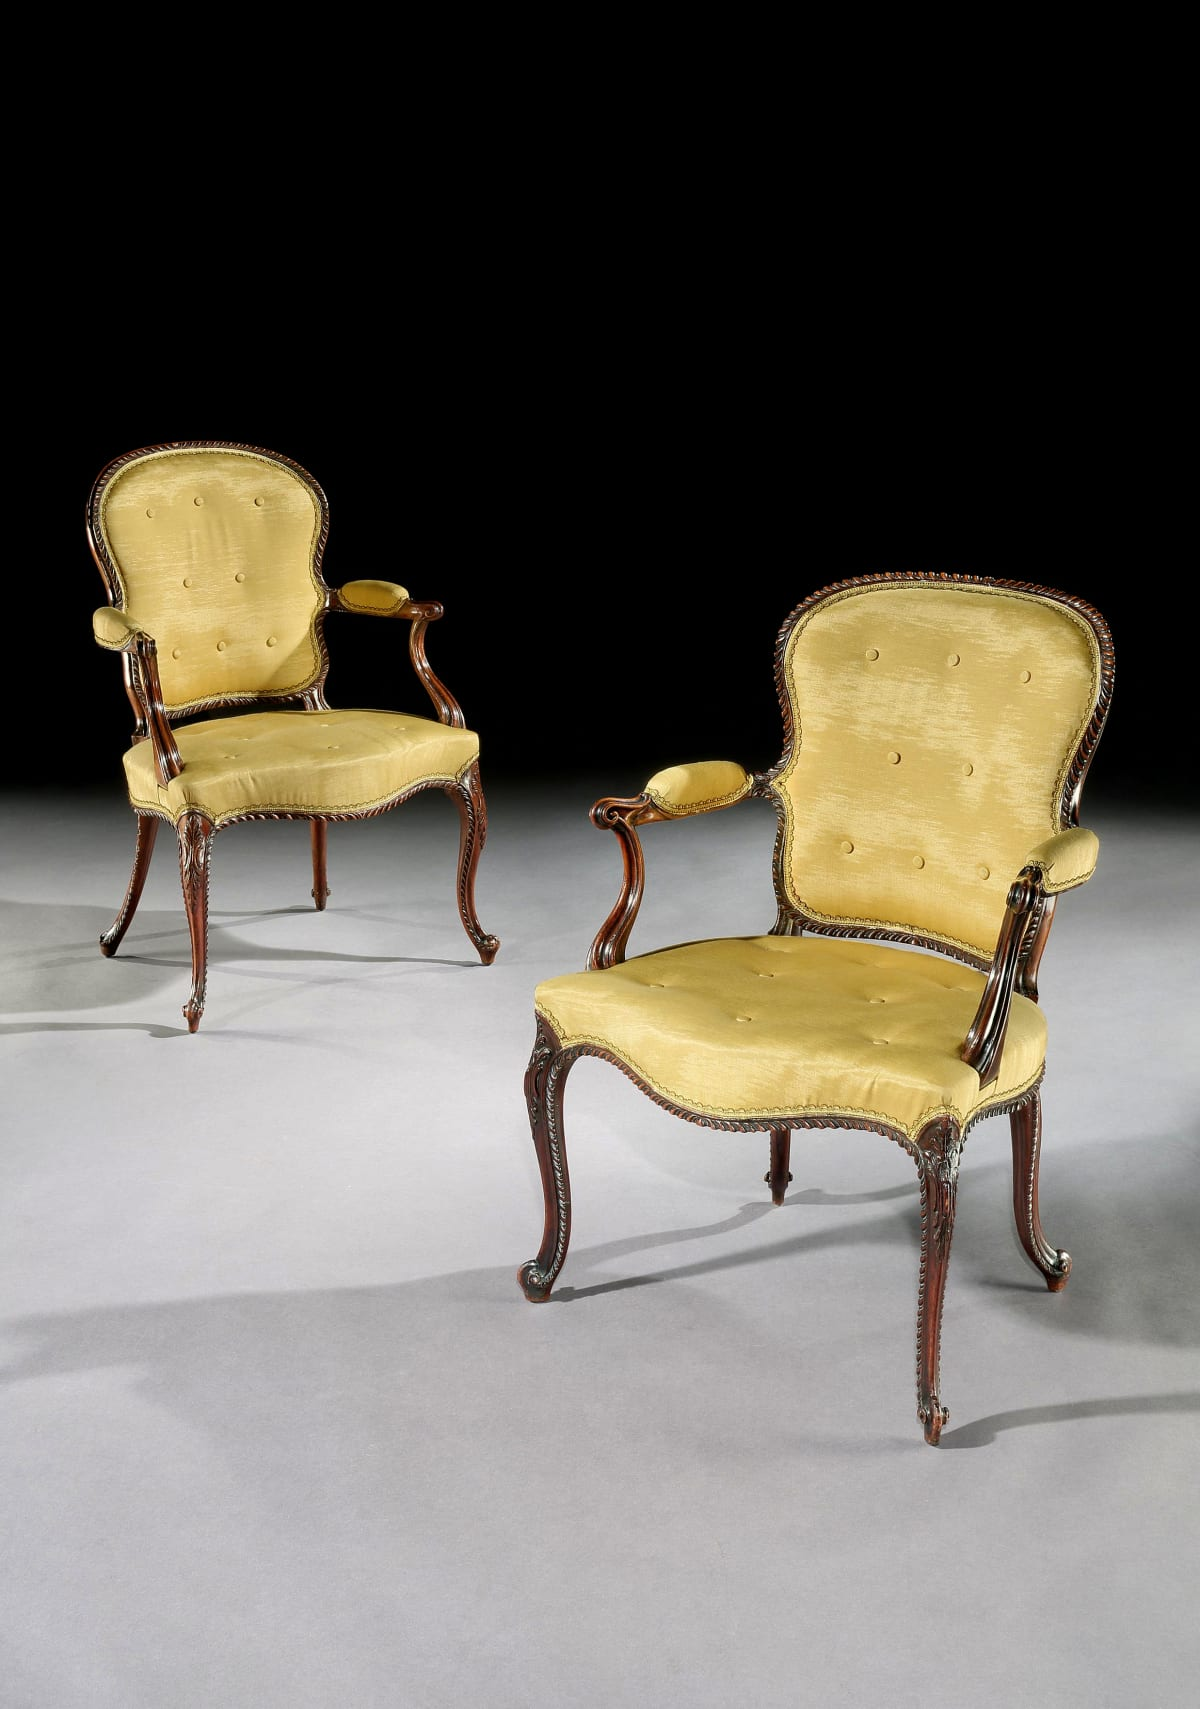 A PAIR OF OPEN ARMCHAIRS. ATTRIBUTED TO JOHN COBB, English, circa 1770